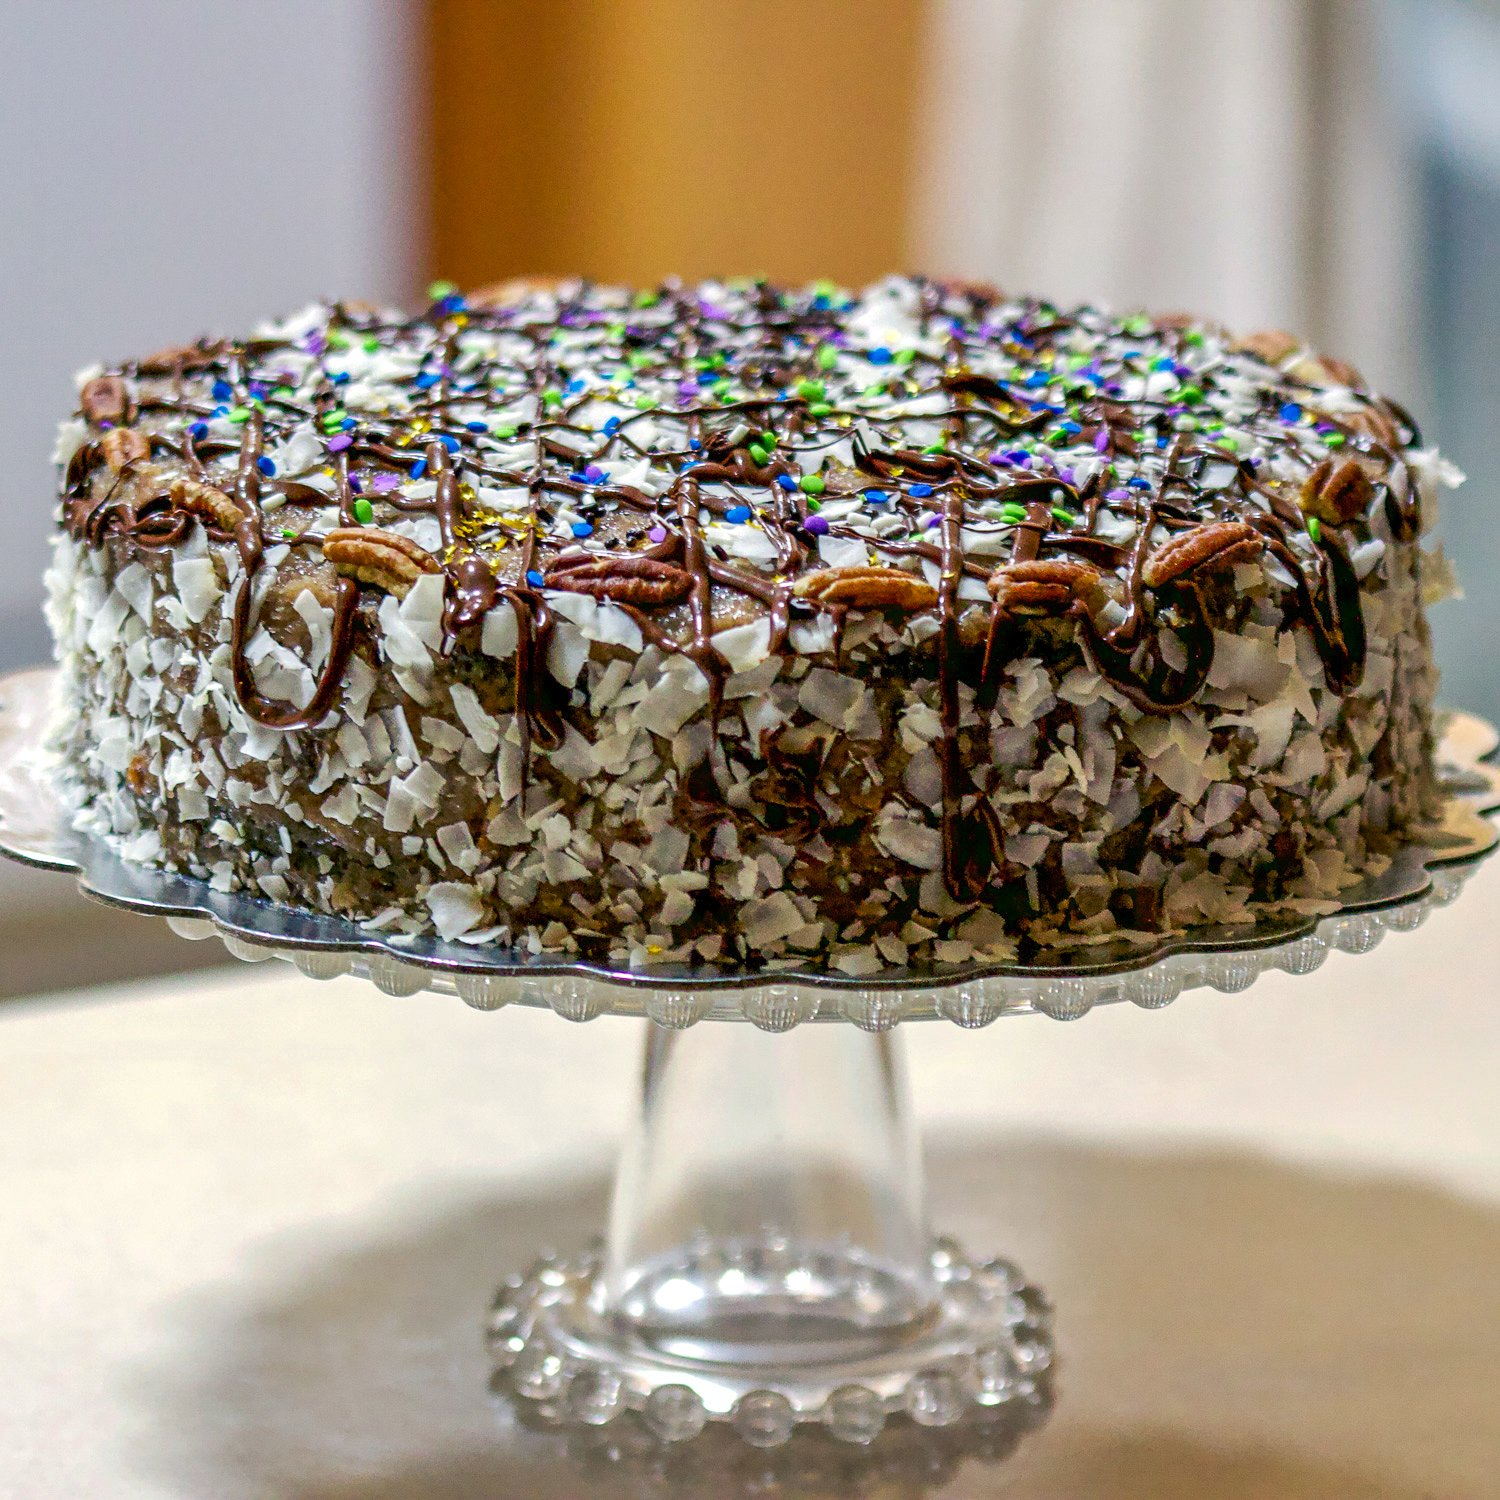 Best homemadeGerman Chocolate Cake that you will fall in love with. This is not your traditional German Chocolate cake. It is less sweet but full of flavors.